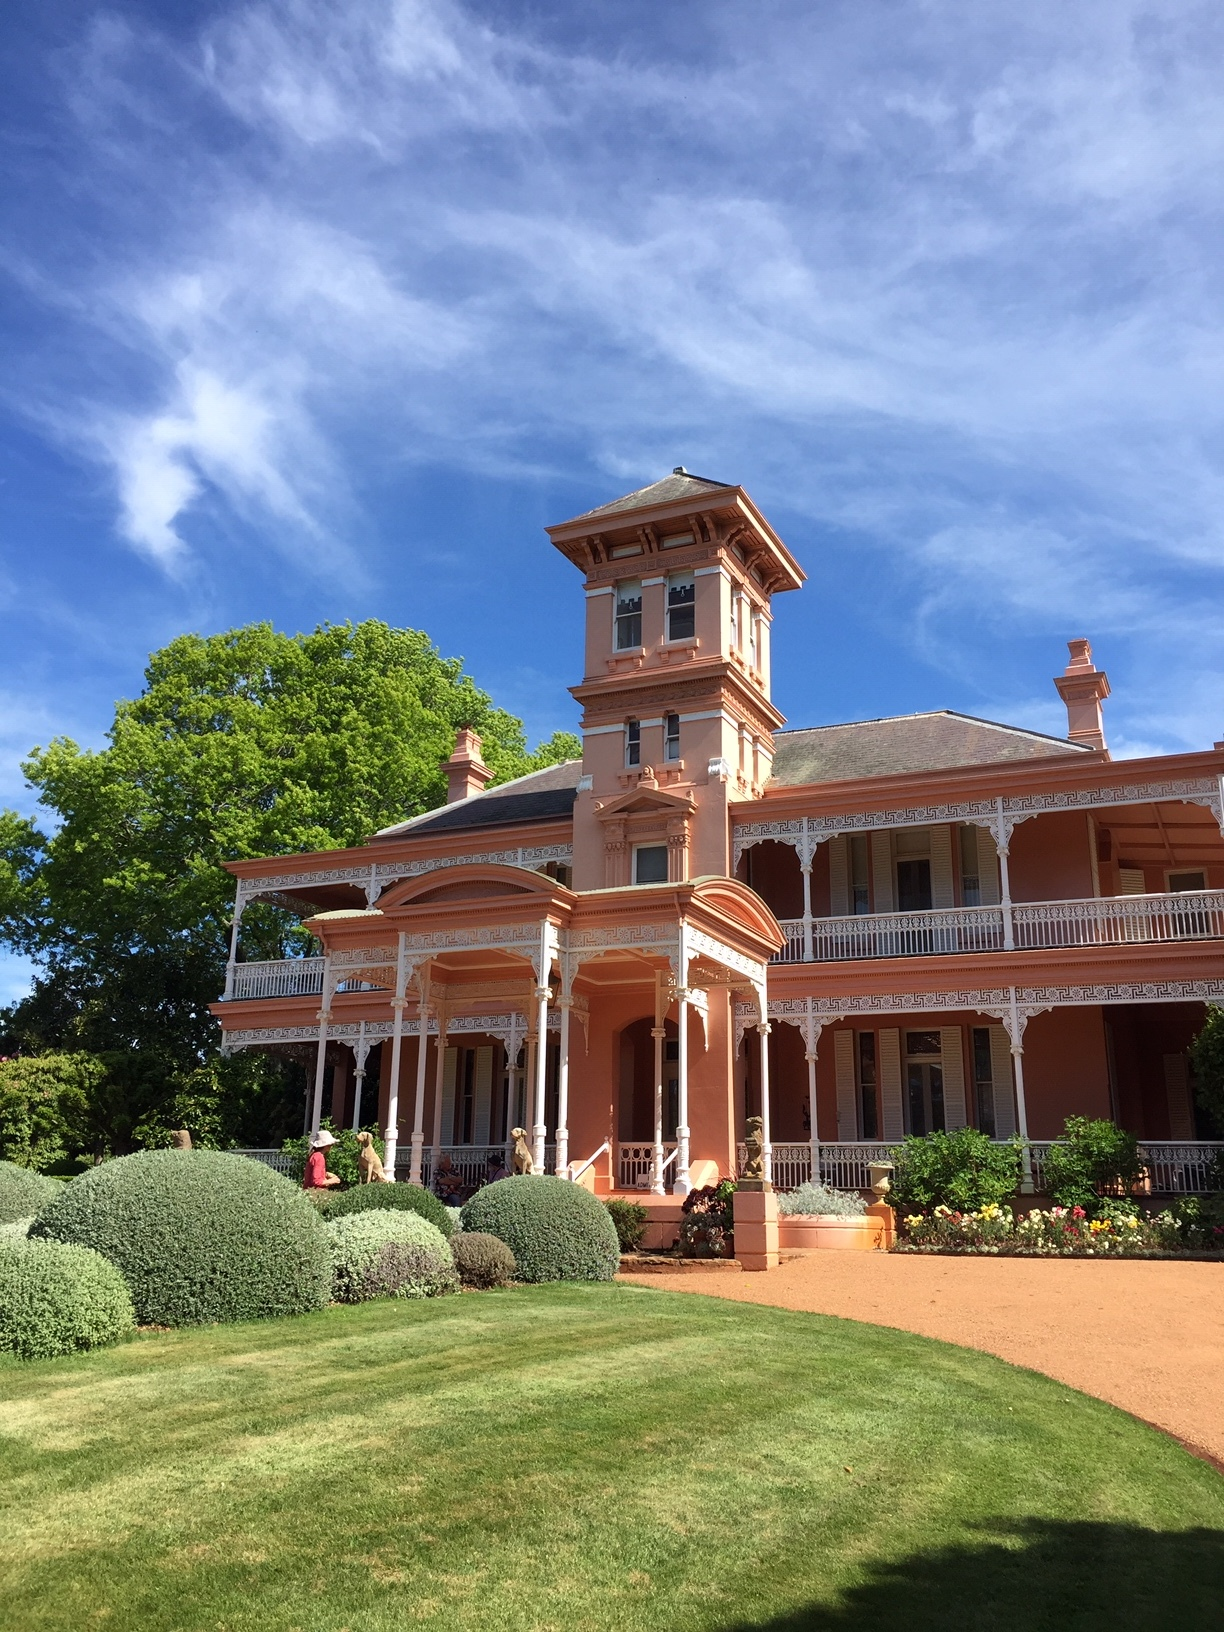 National Trust (NSW) historic garden, Retford Park at Bowral. Photos P Vizents at 2018 AGHS National Conference